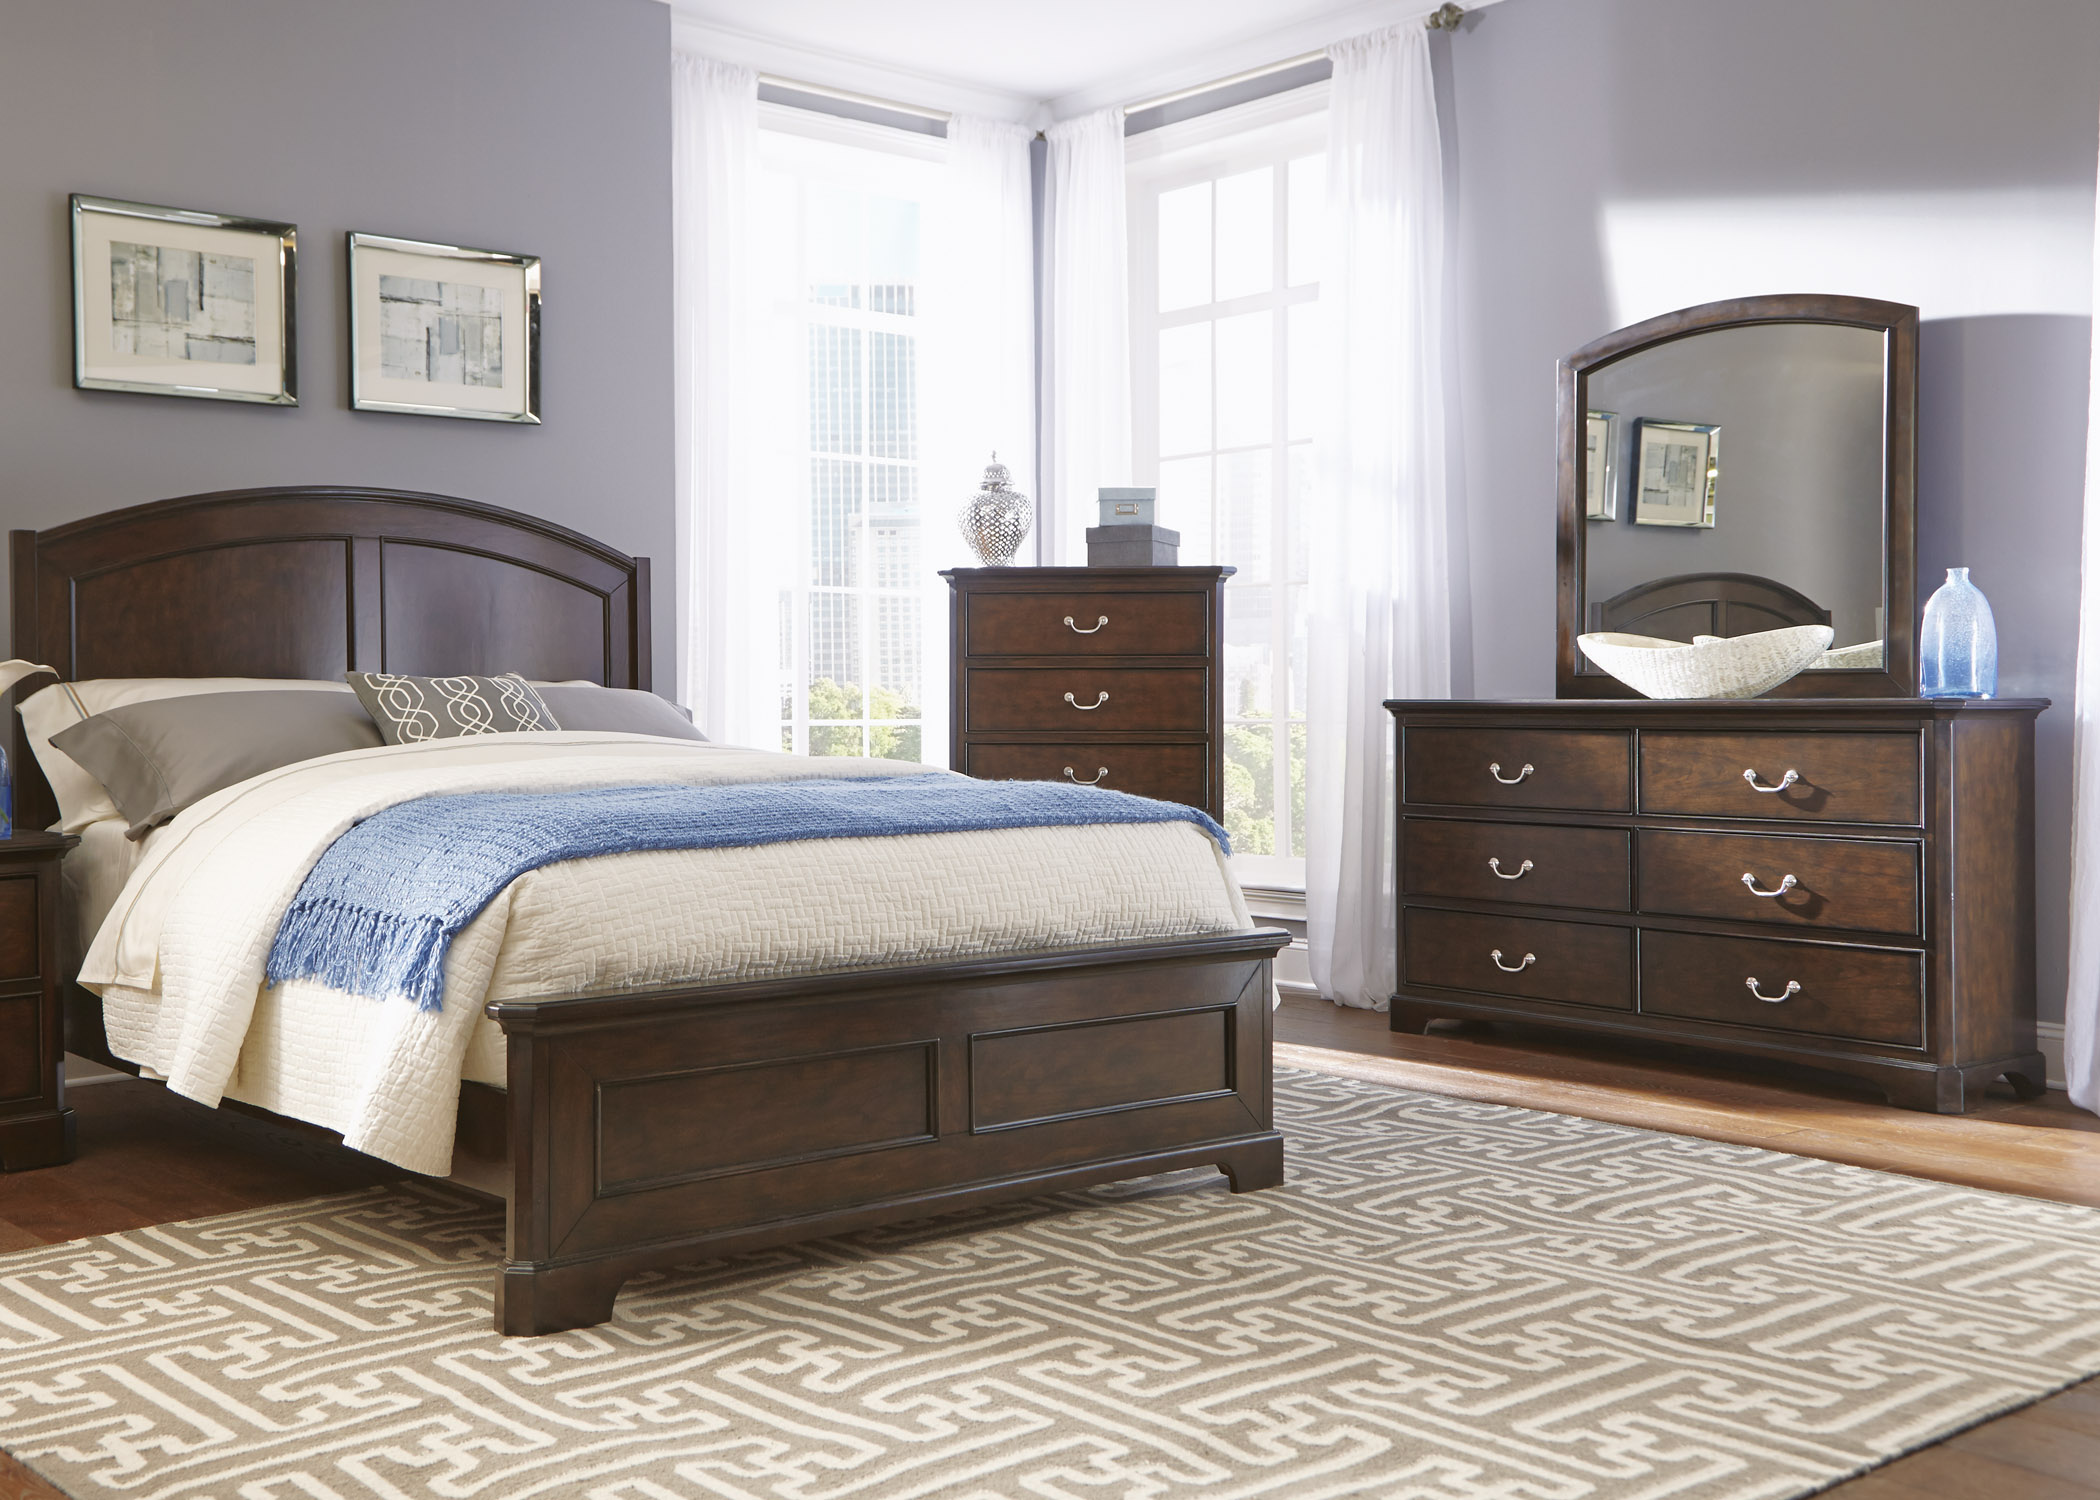 Liberty Furniture Avington Queen Bedroom Group - Item Number: 172-BR-QPBDMC